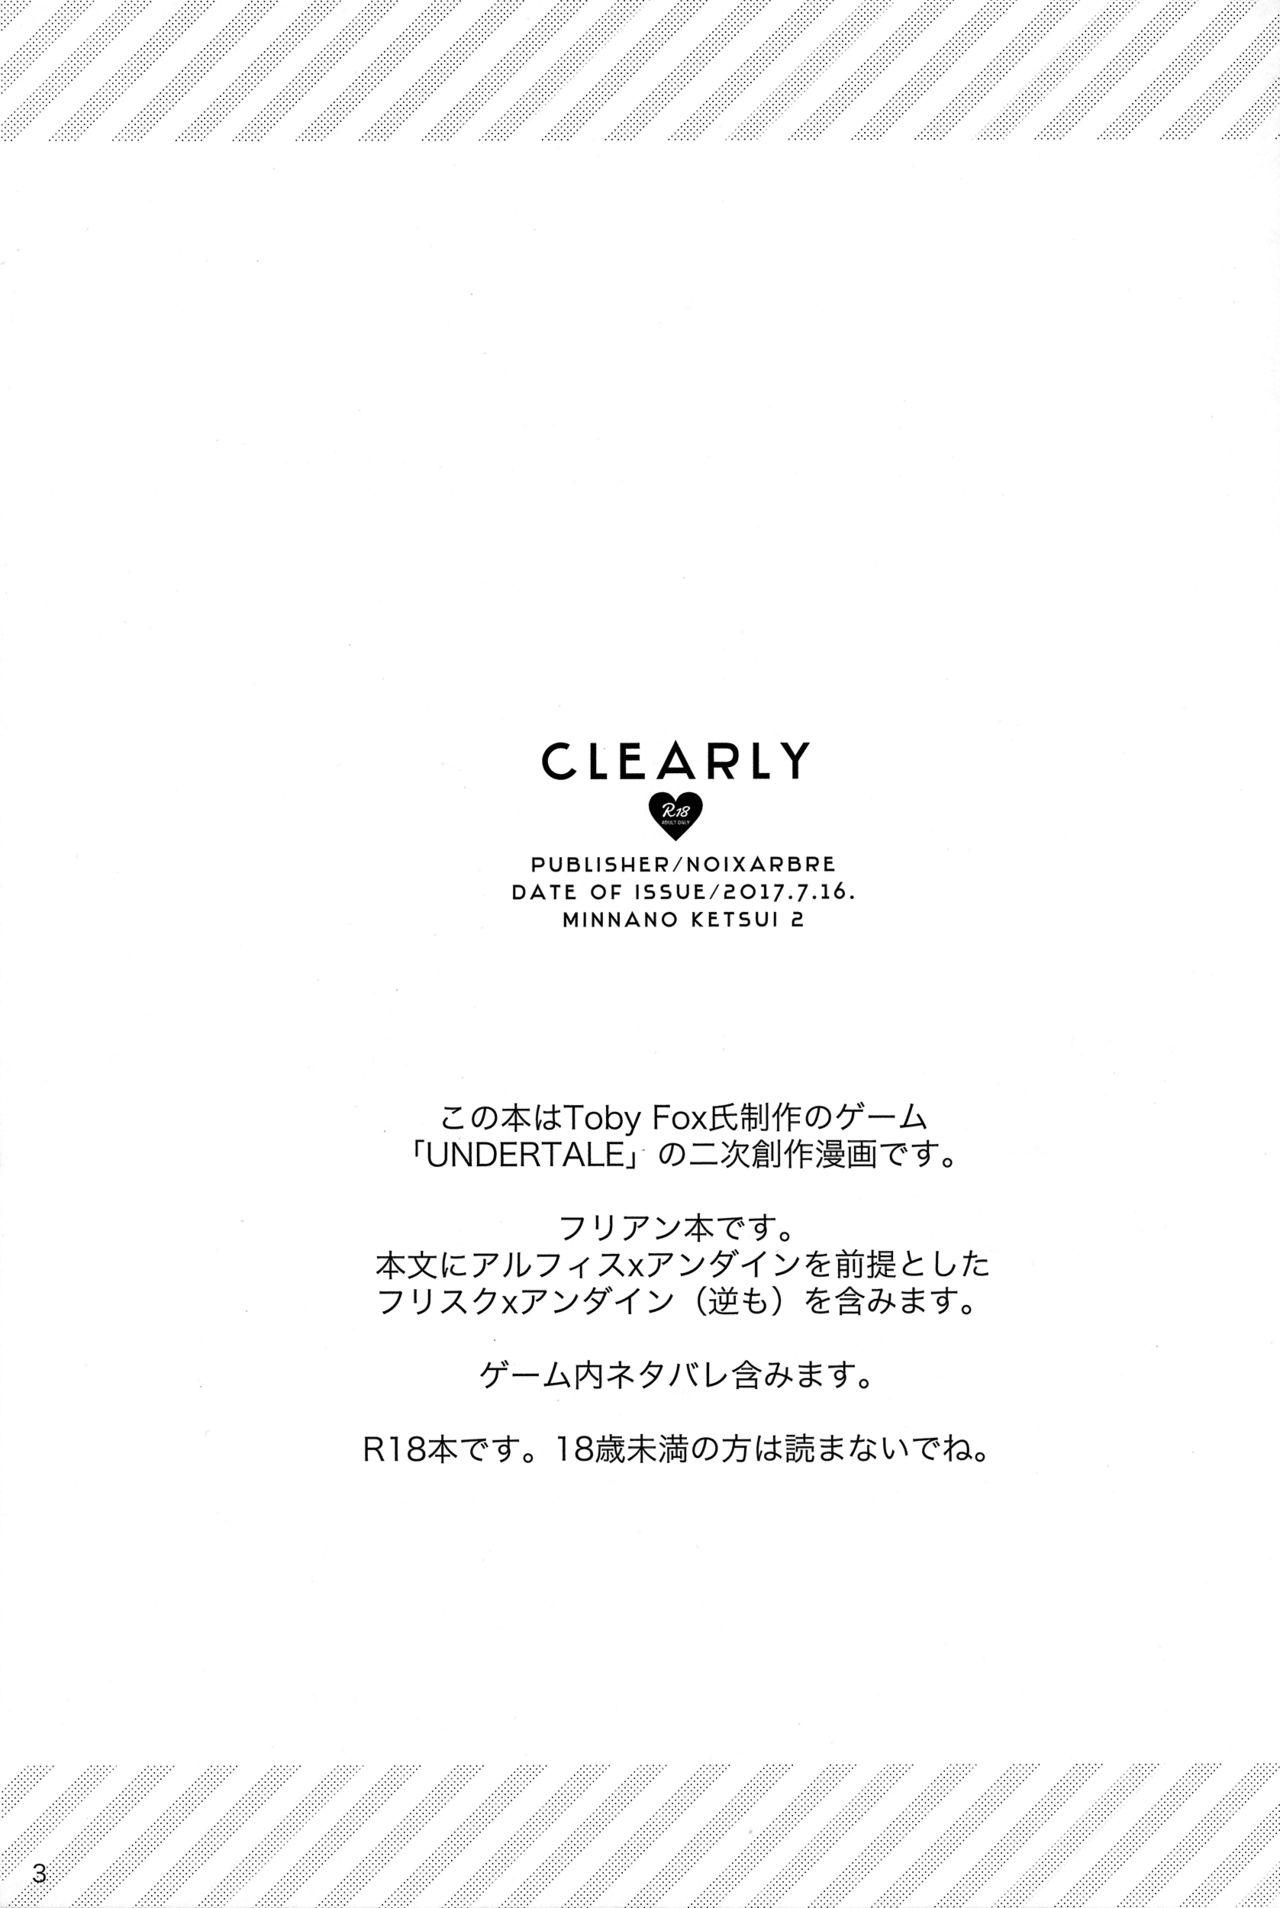 CLEARLY 2